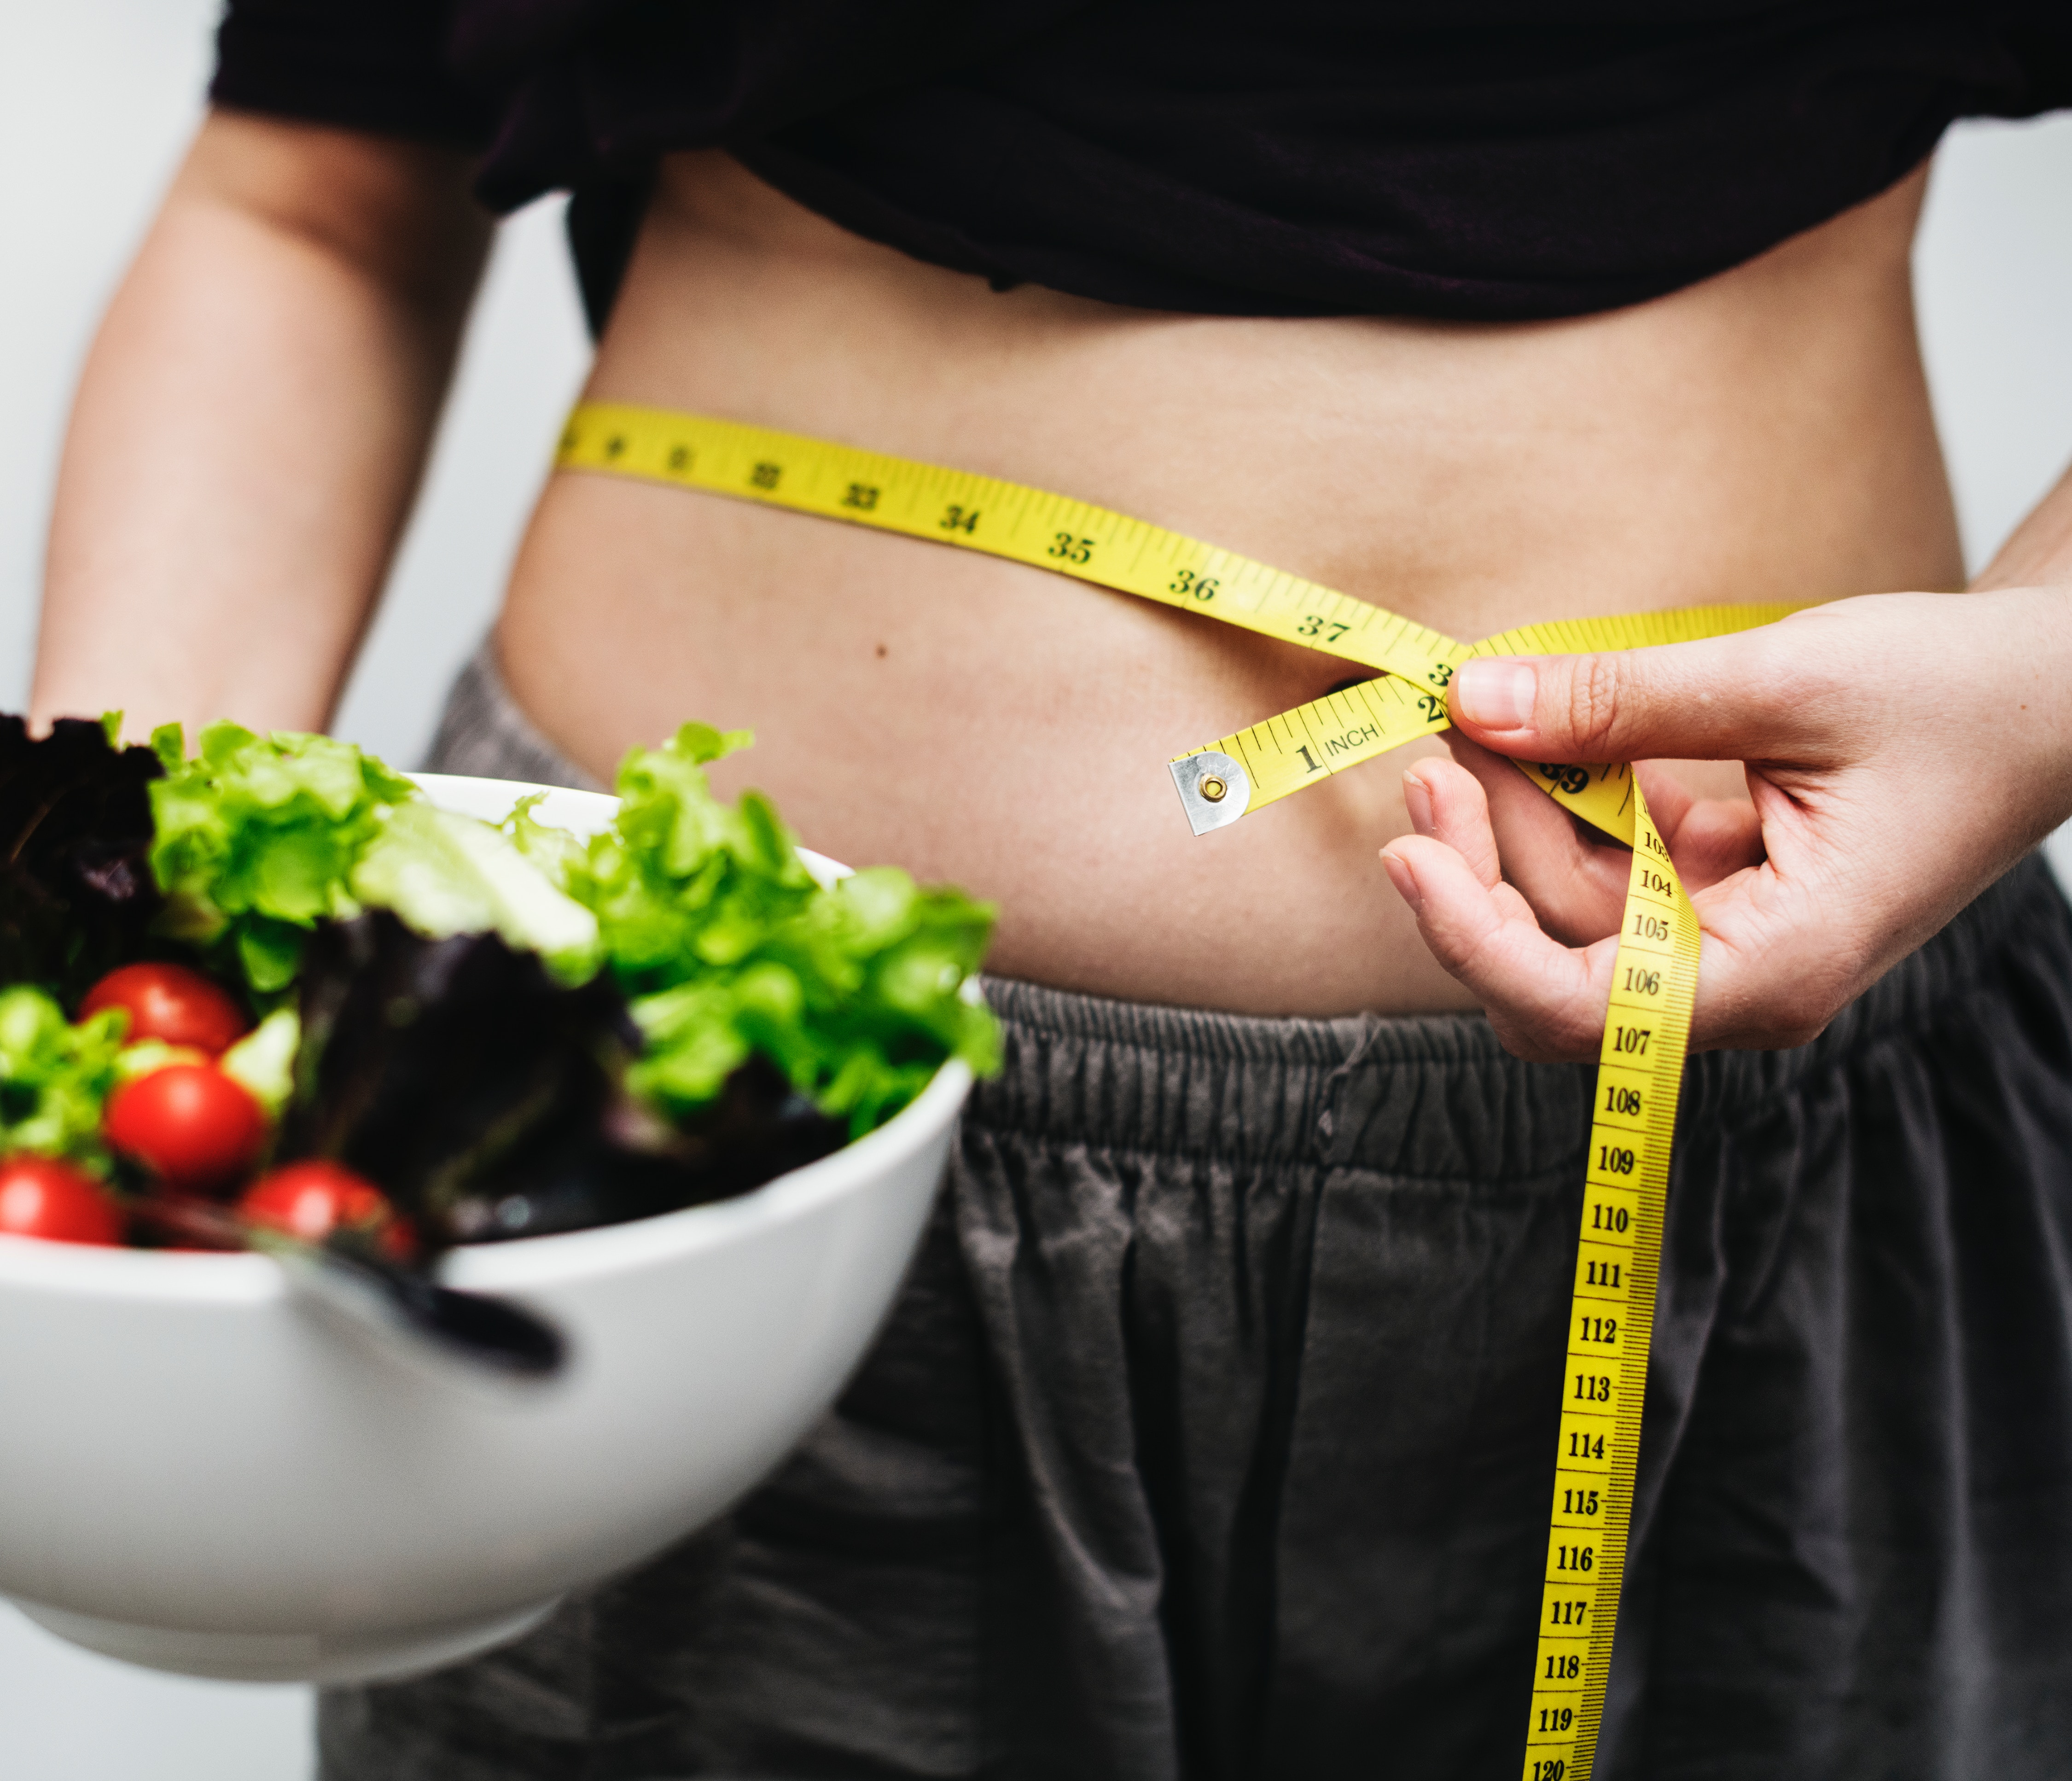 Low calorie diet will help you in losing weight!